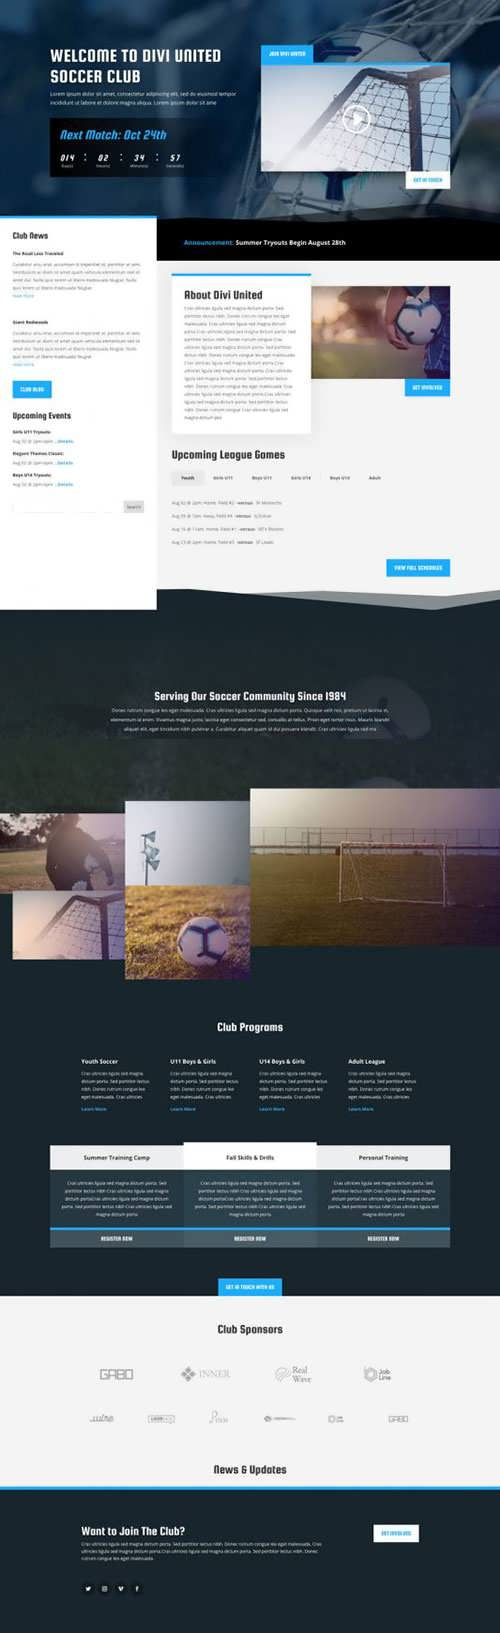 soccer club landing page